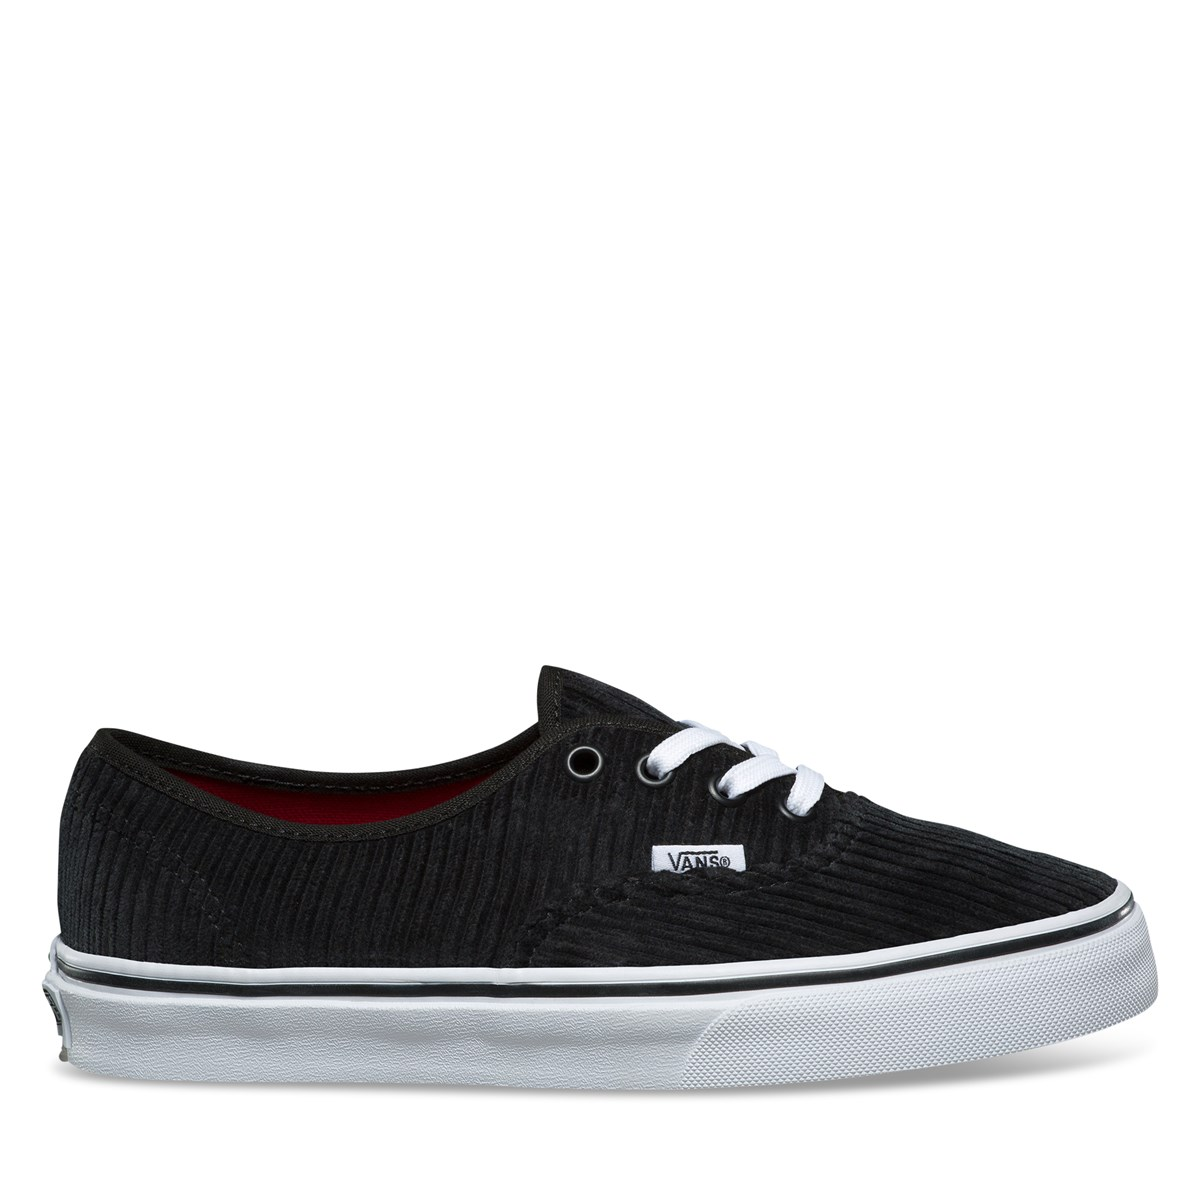 Women's Authentic Sneaker in Black